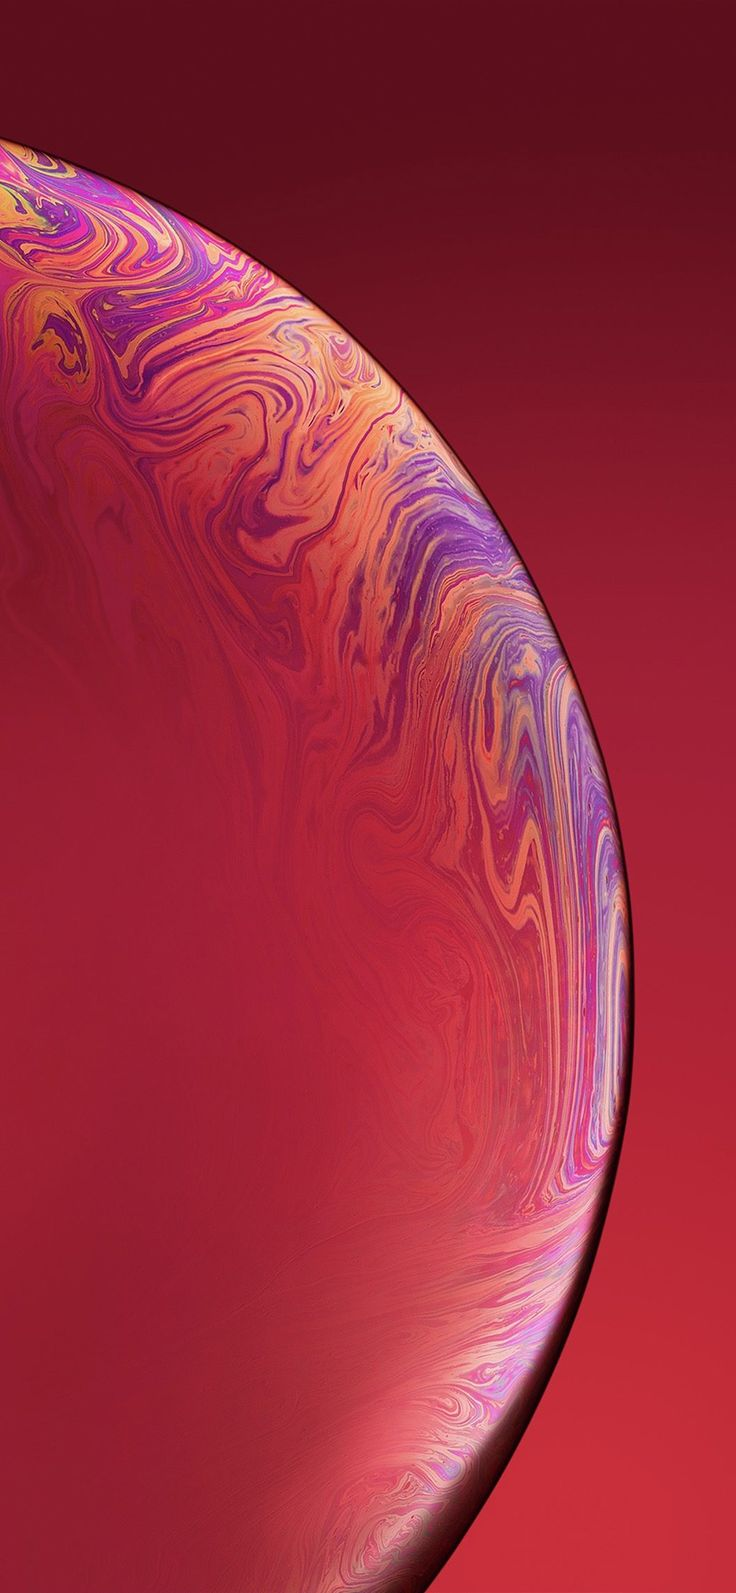 Iphone X Wallpaper Bg43 Red Apple Iphone Xs Max New Official Art